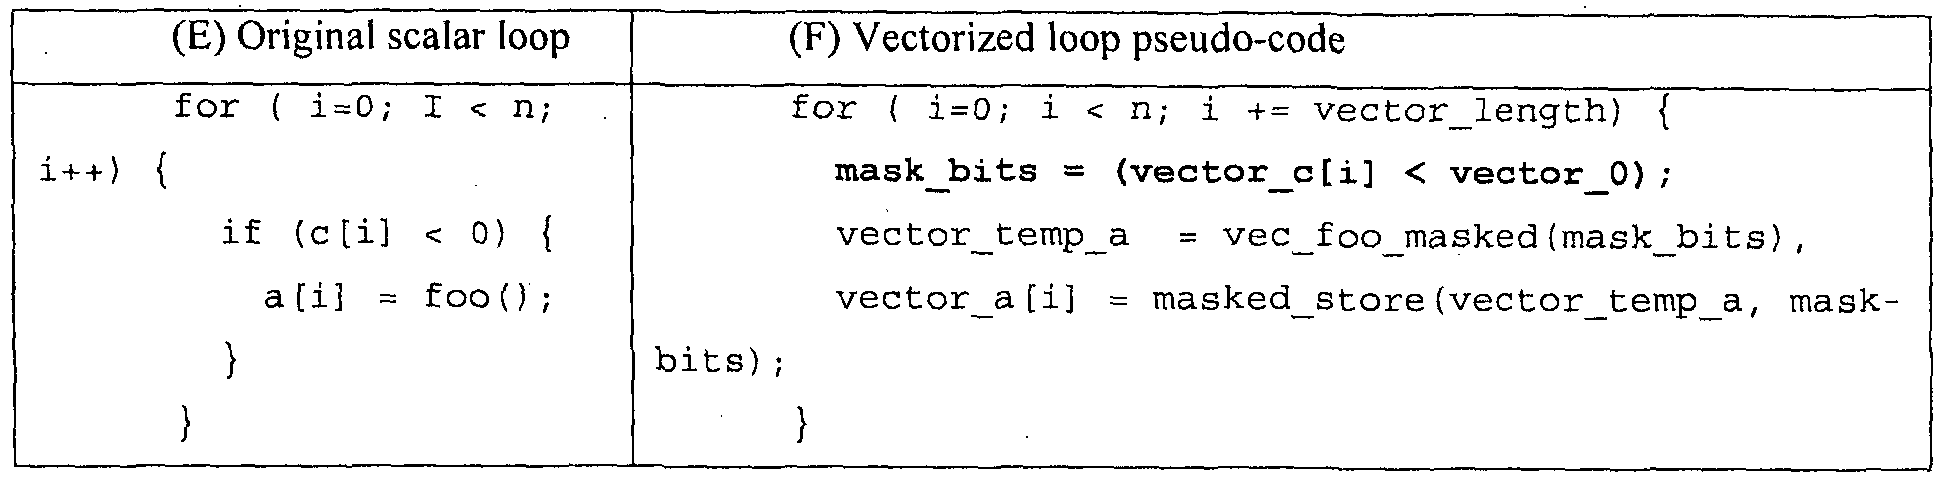 WO2012134322A1 - Vectorization of scalar functions including